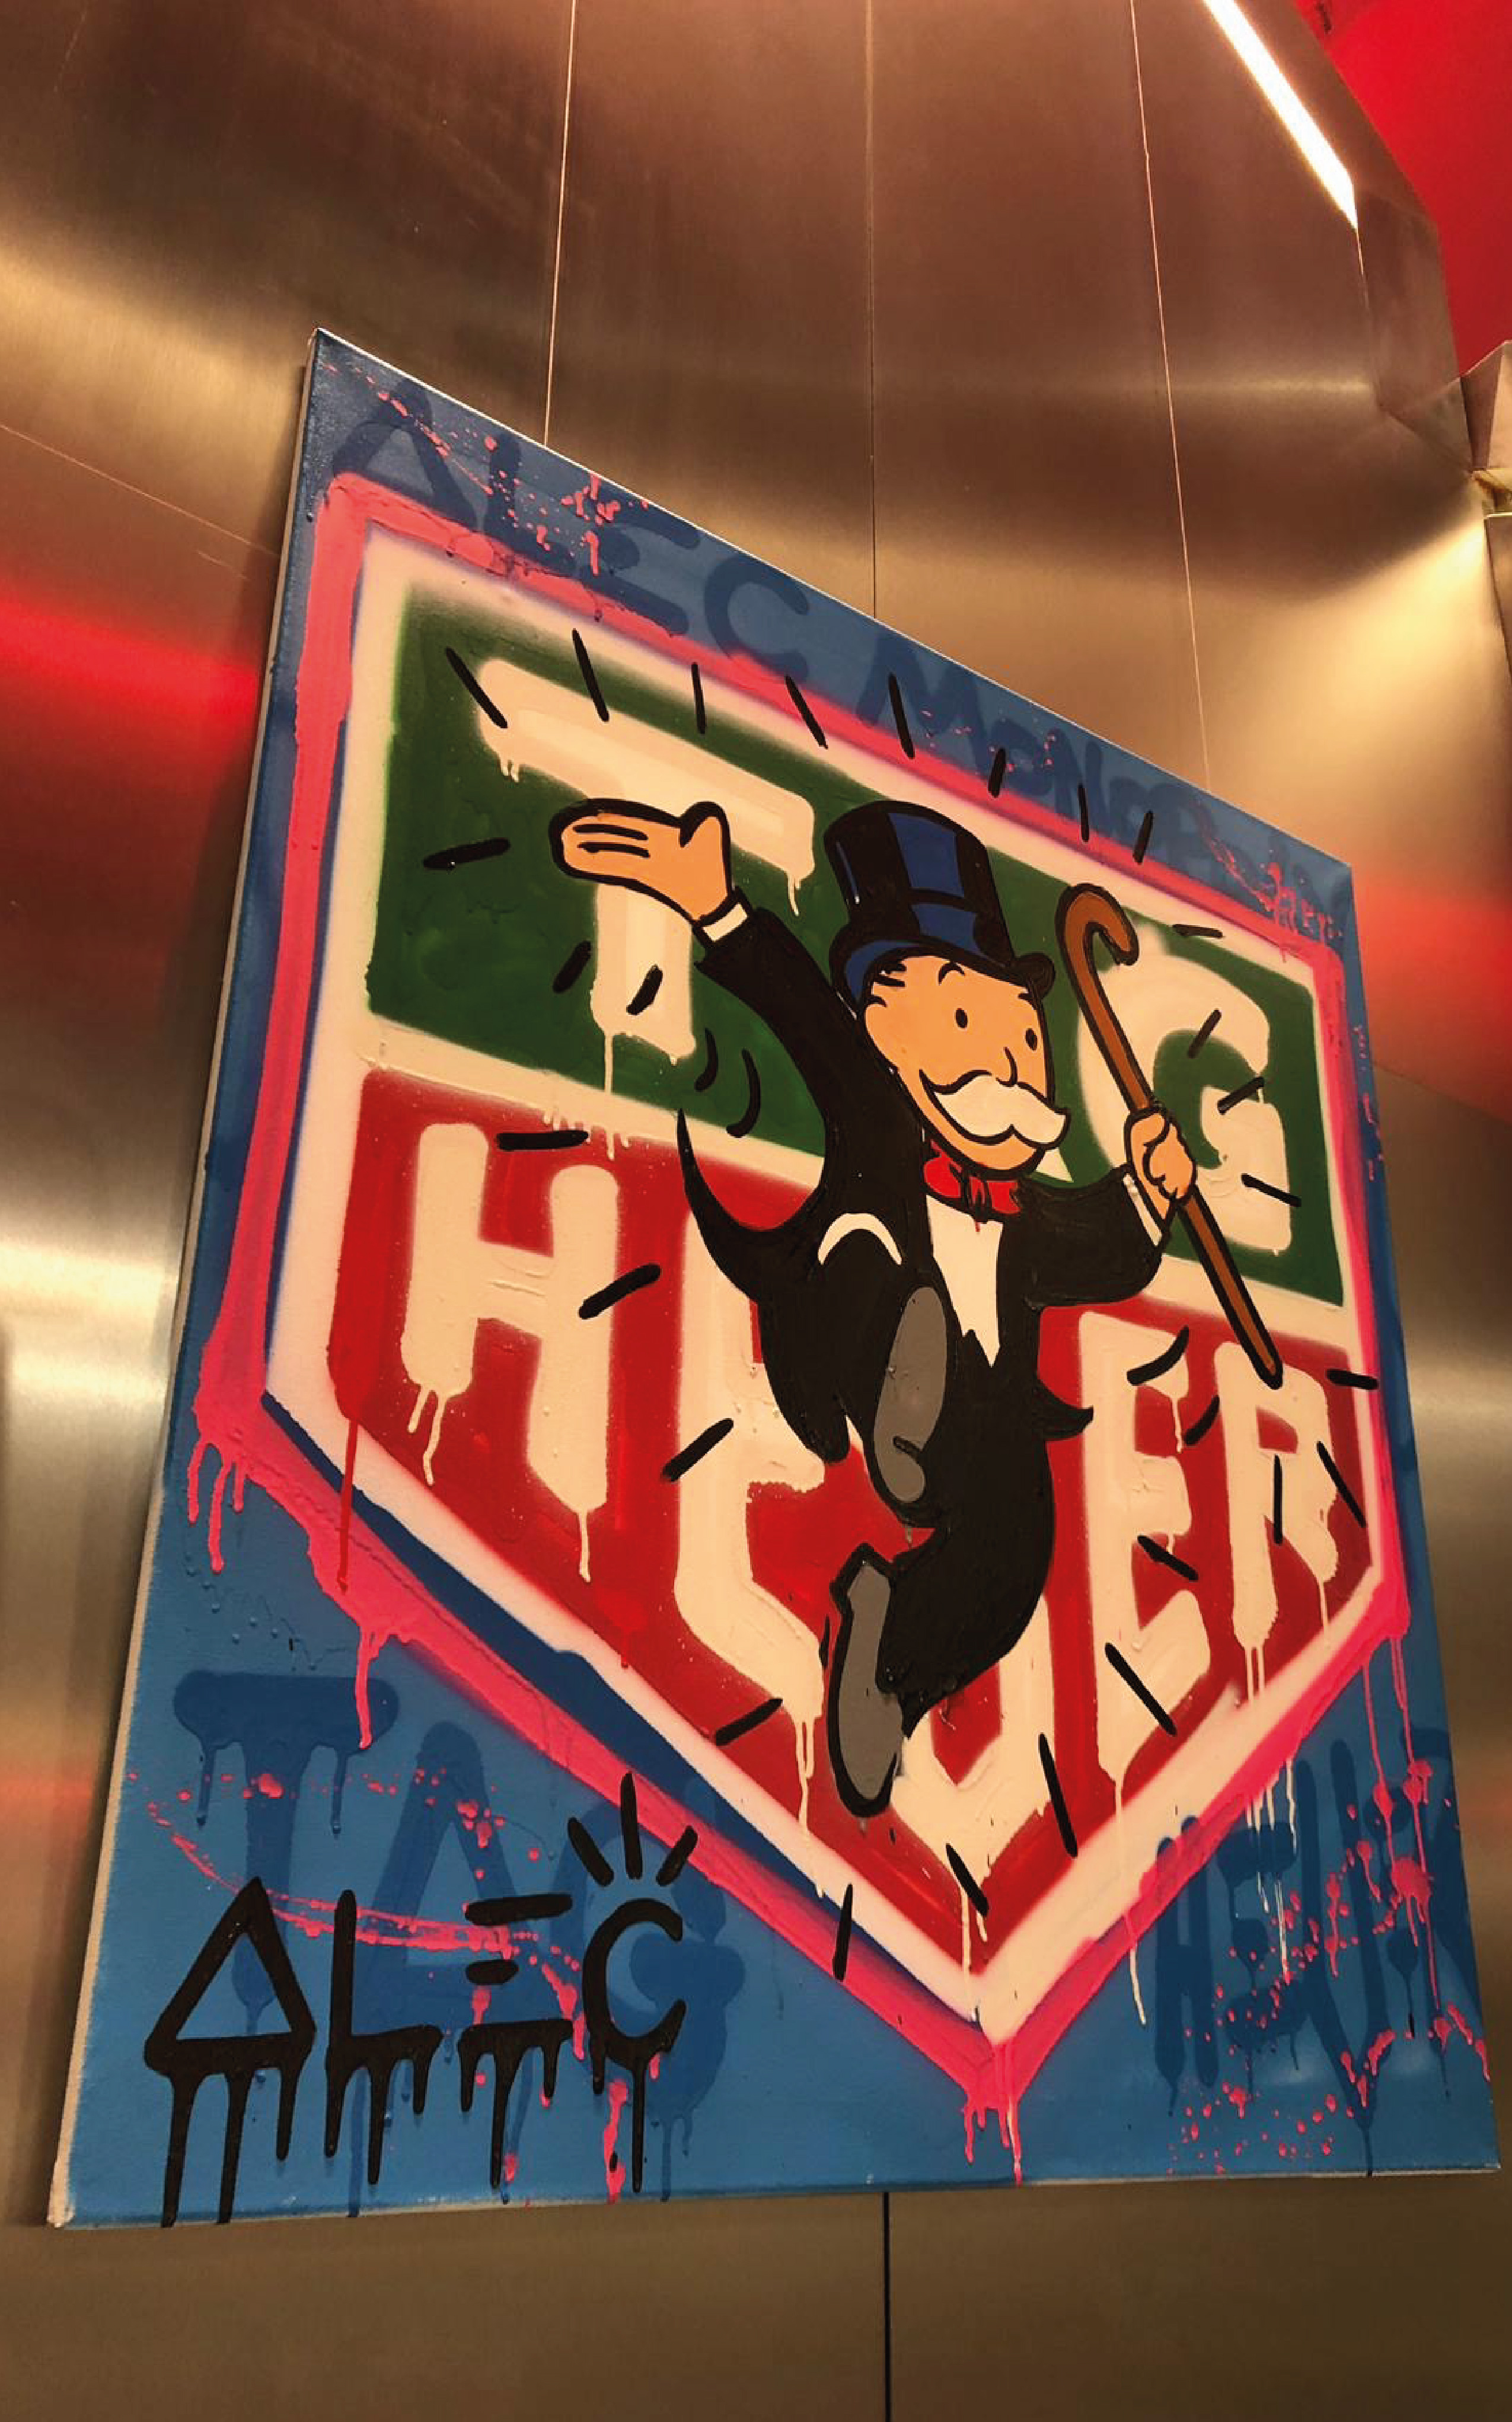 ALEC MONOPOLY HANGING SIGN